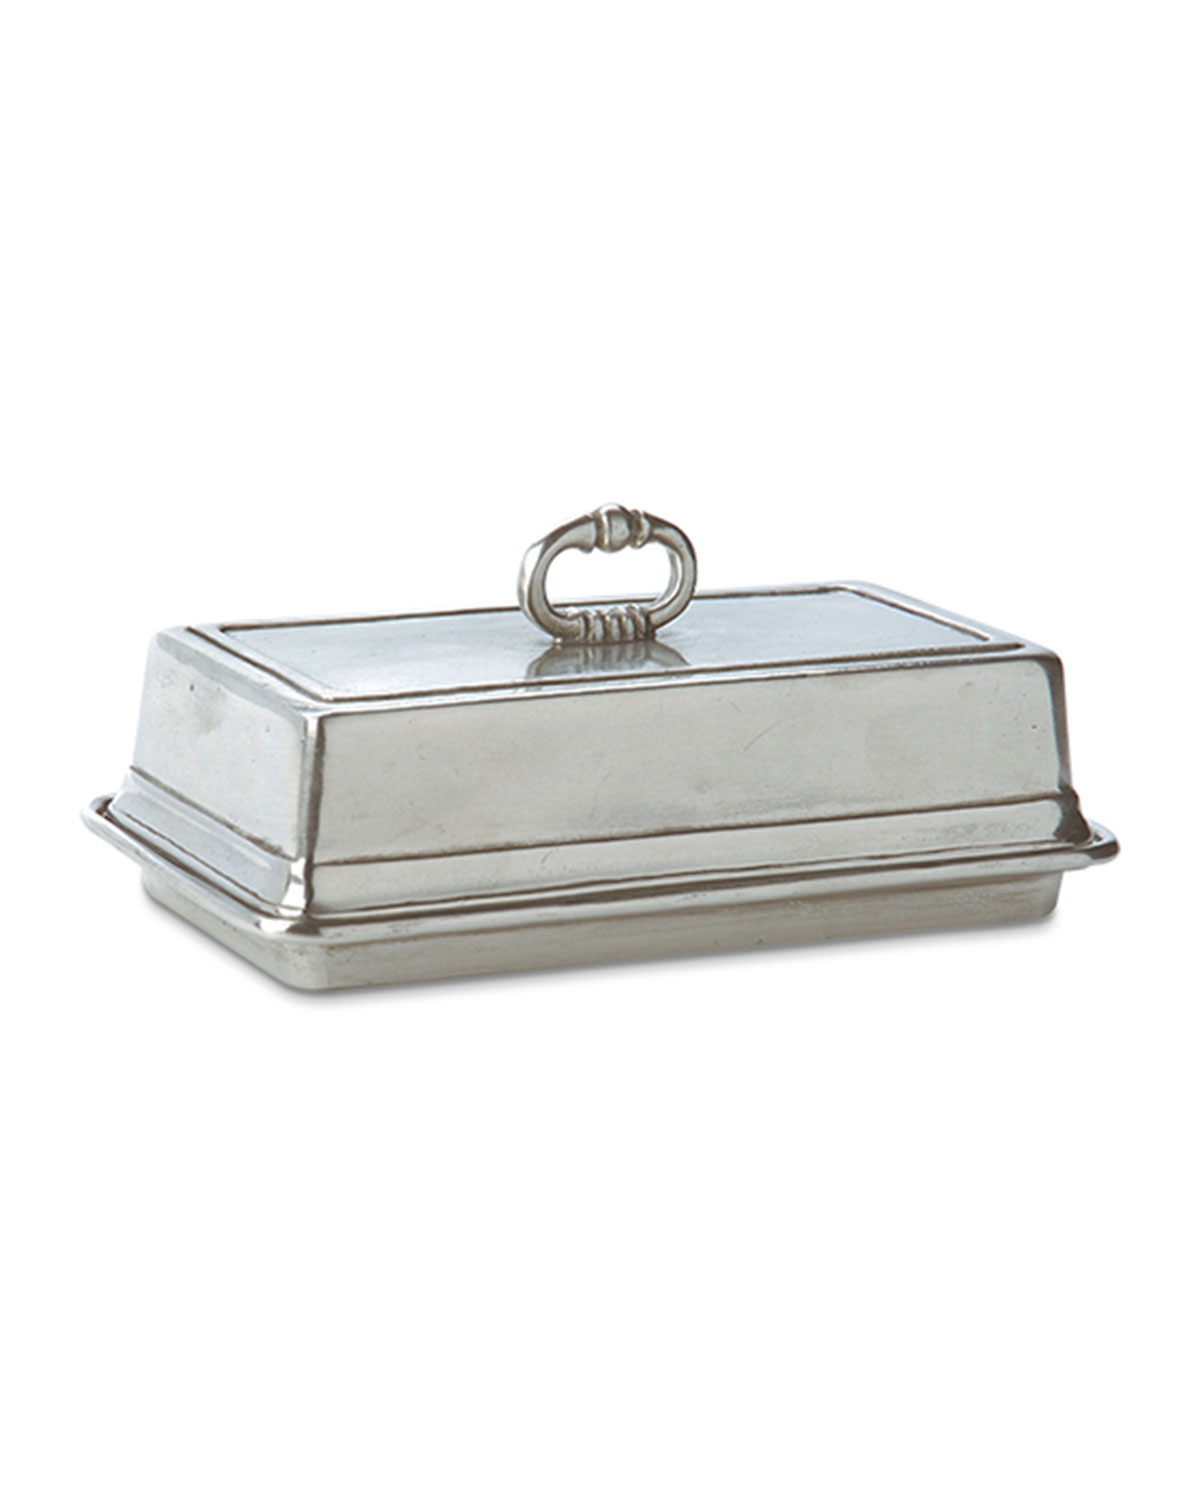 Match Kitchen & dinings COVERED BUTTER DISH